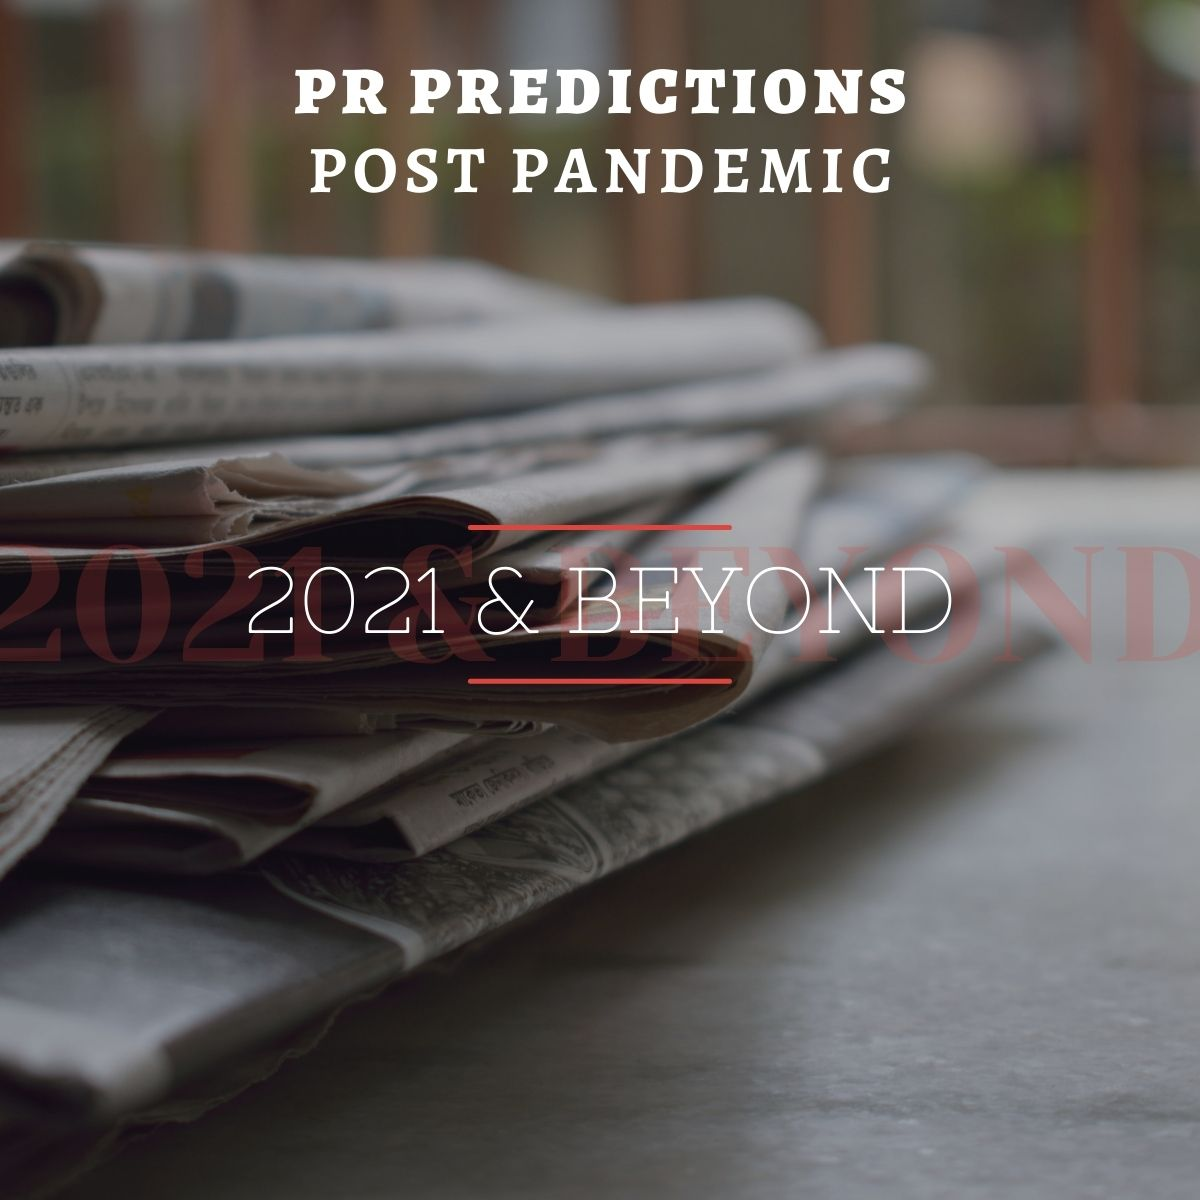 Post-pandemic PR: 6 predictions for 2021 and beyond